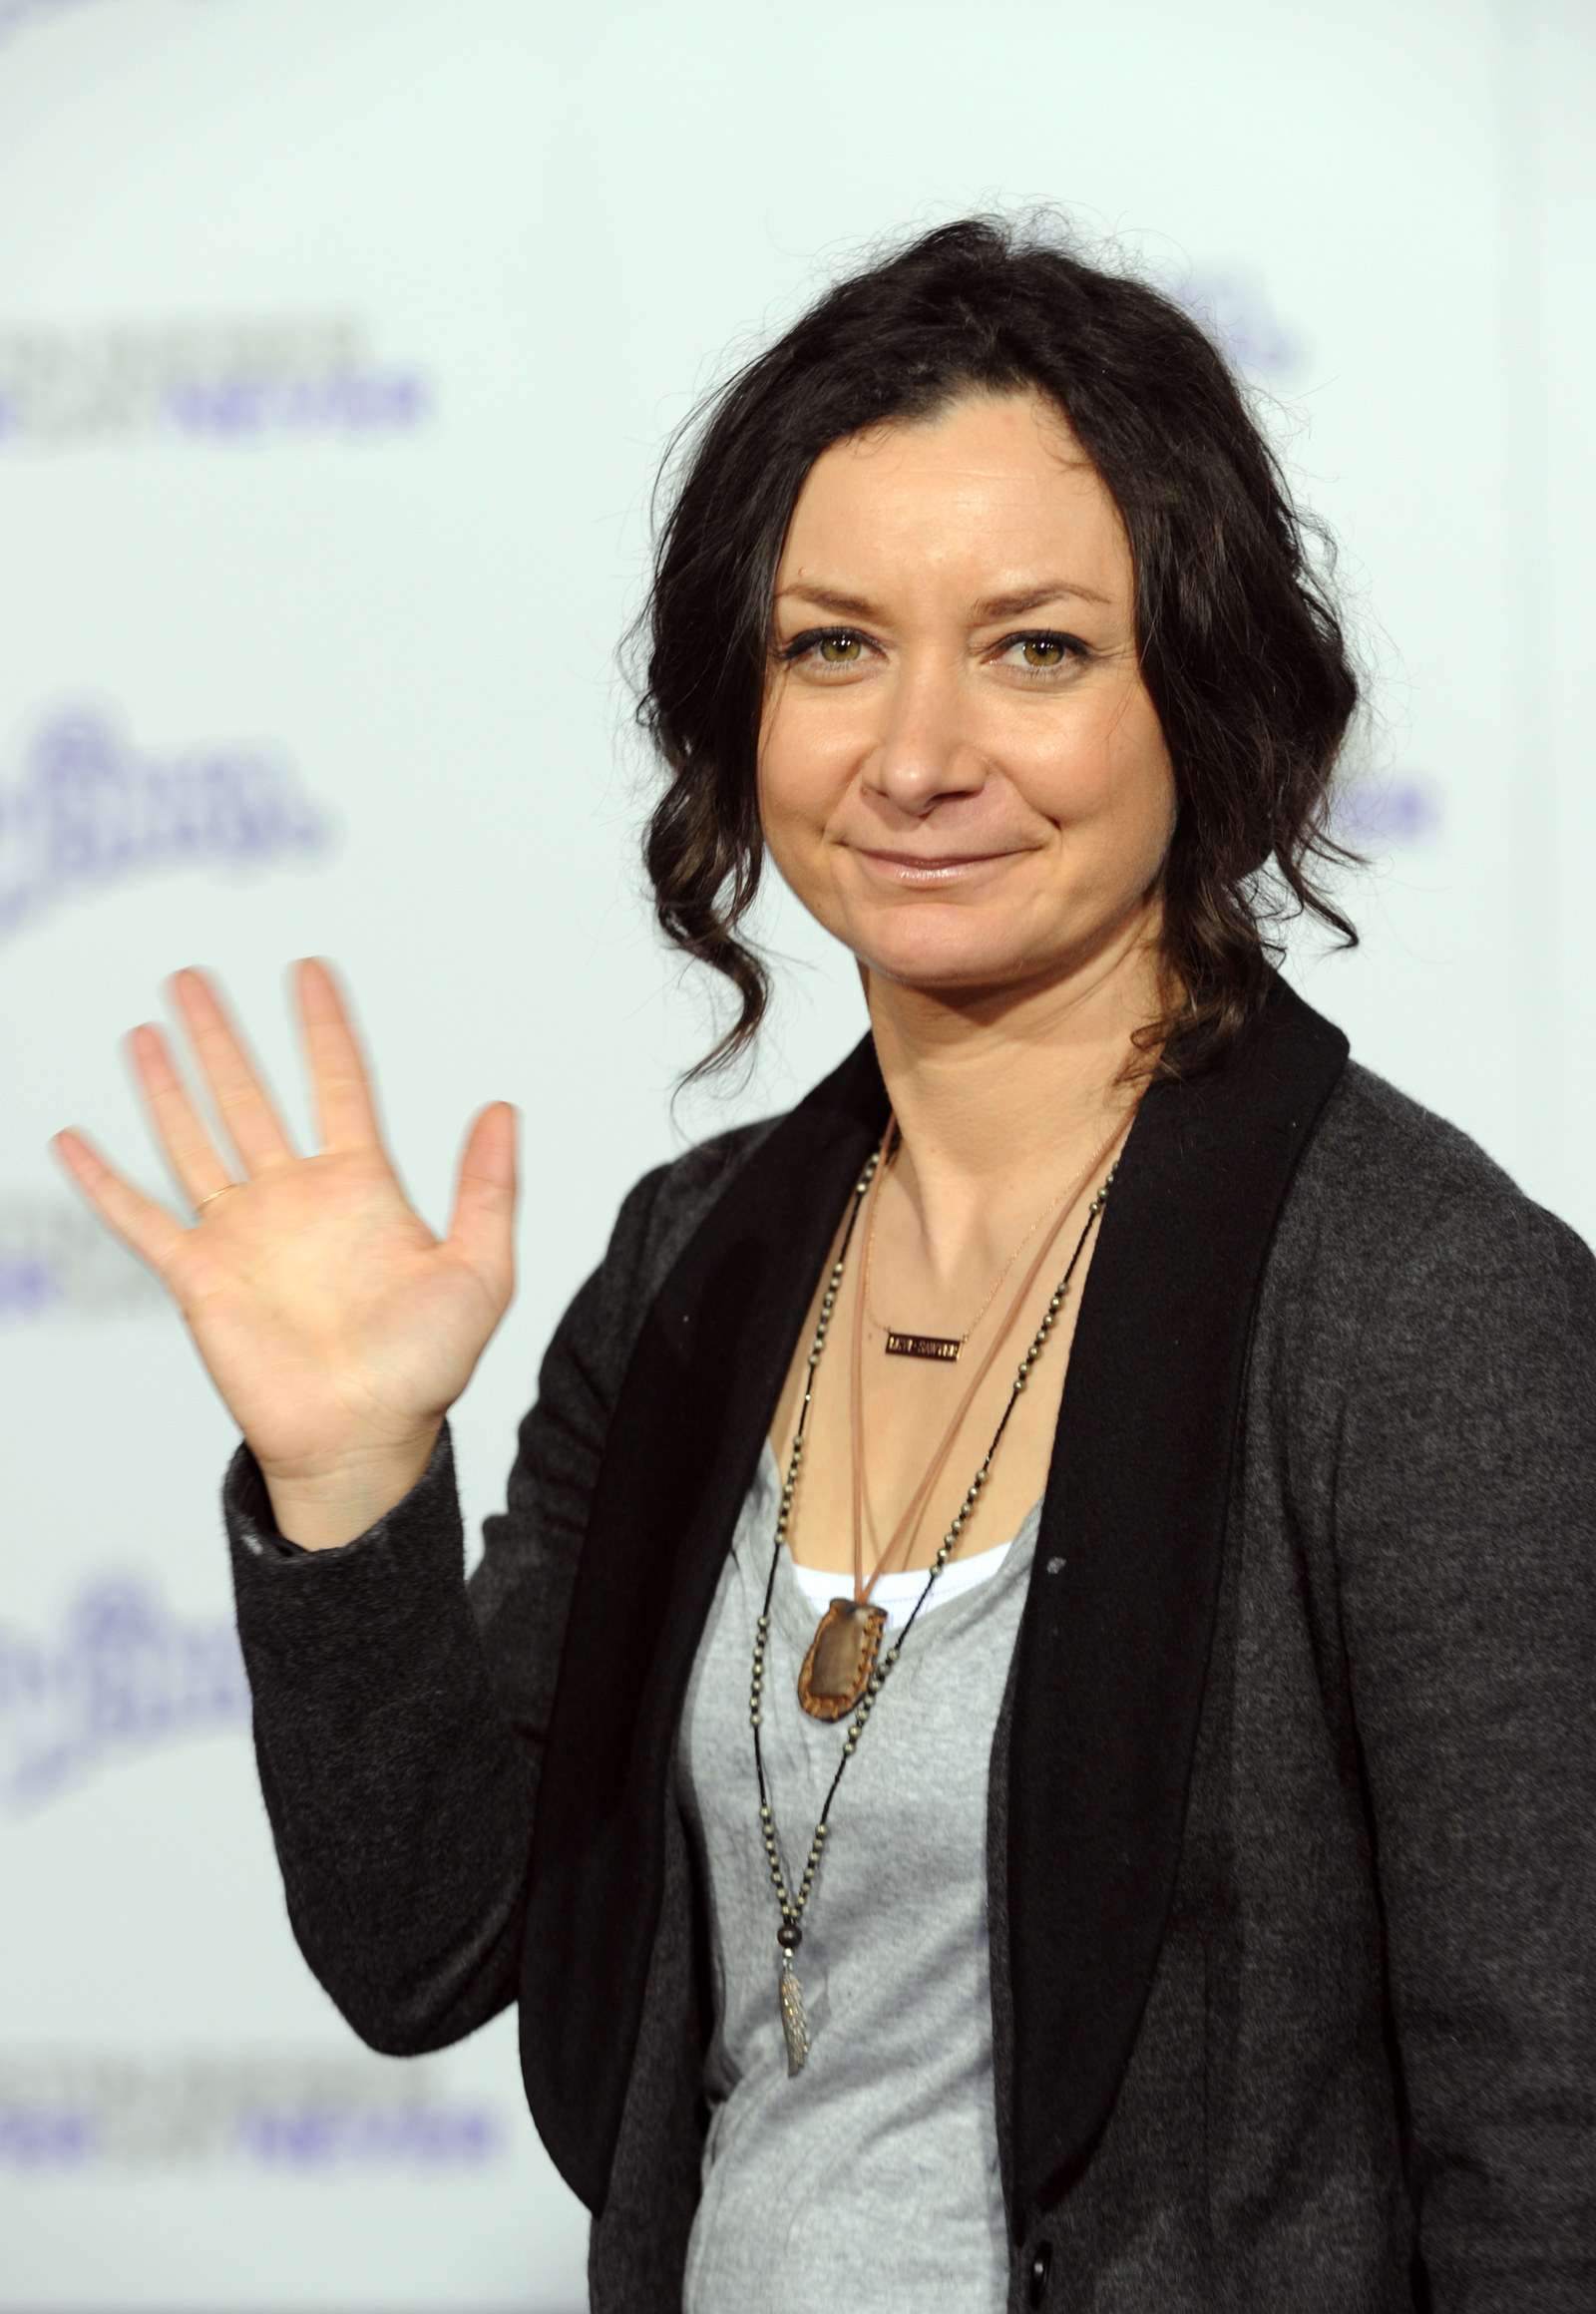 Sara Gilbert was also there too for some reason